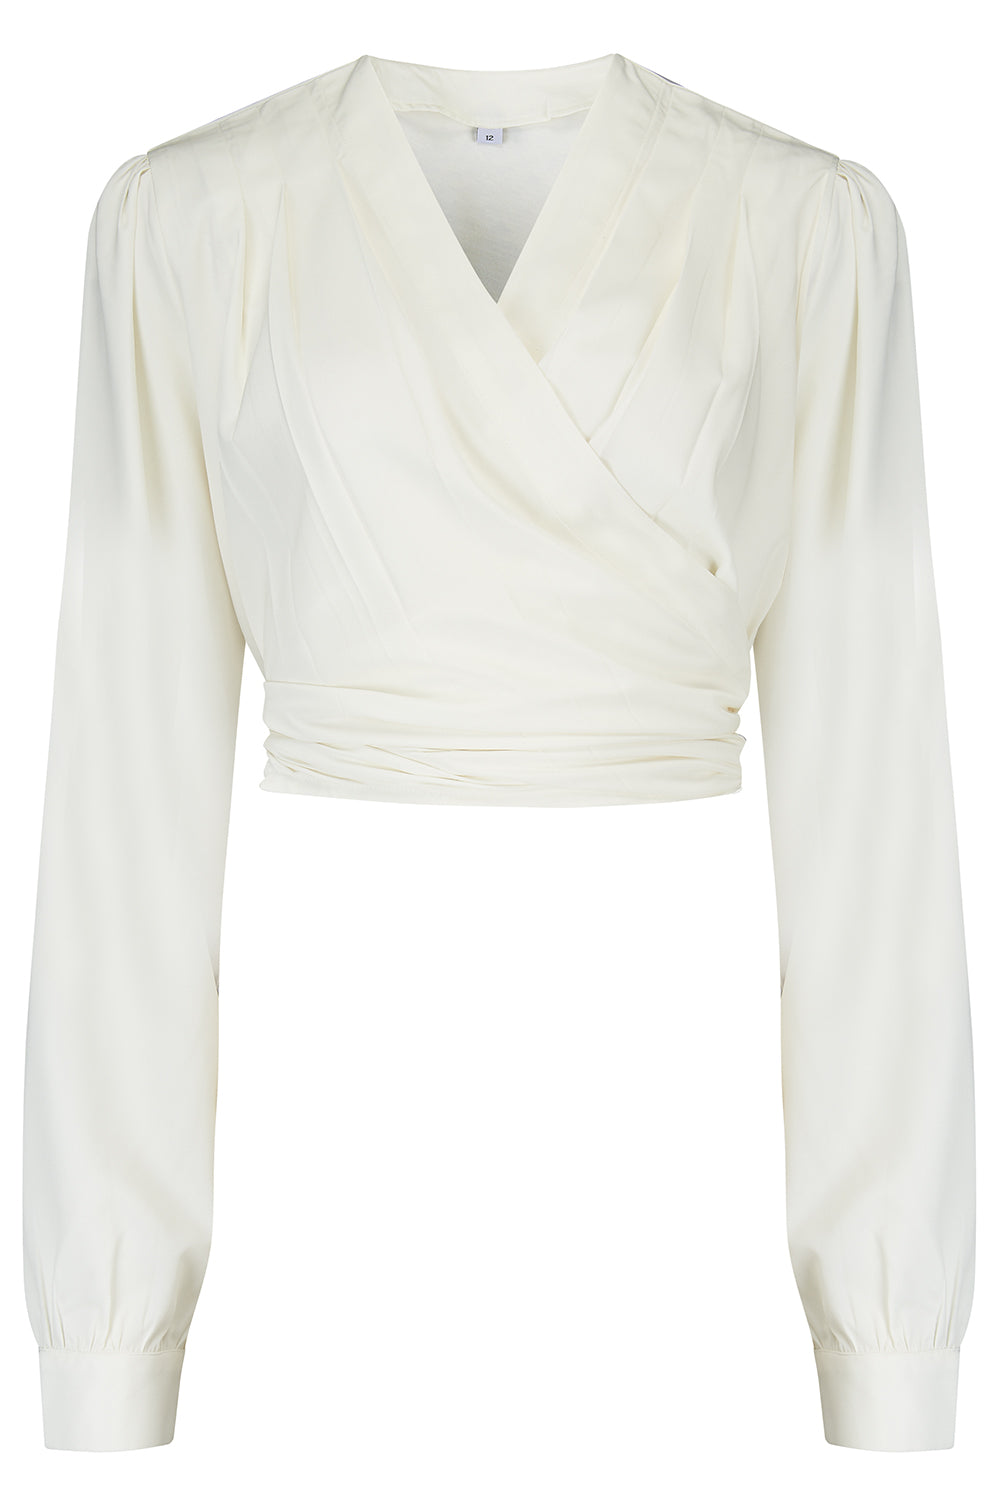 1930s Style Blouses, Shirts, Tops | Vintage Blouses Pre-Order The Darla Long Sleeve Wrap Blouse in Antique White True Vintage Style £29.00 AT vintagedancer.com